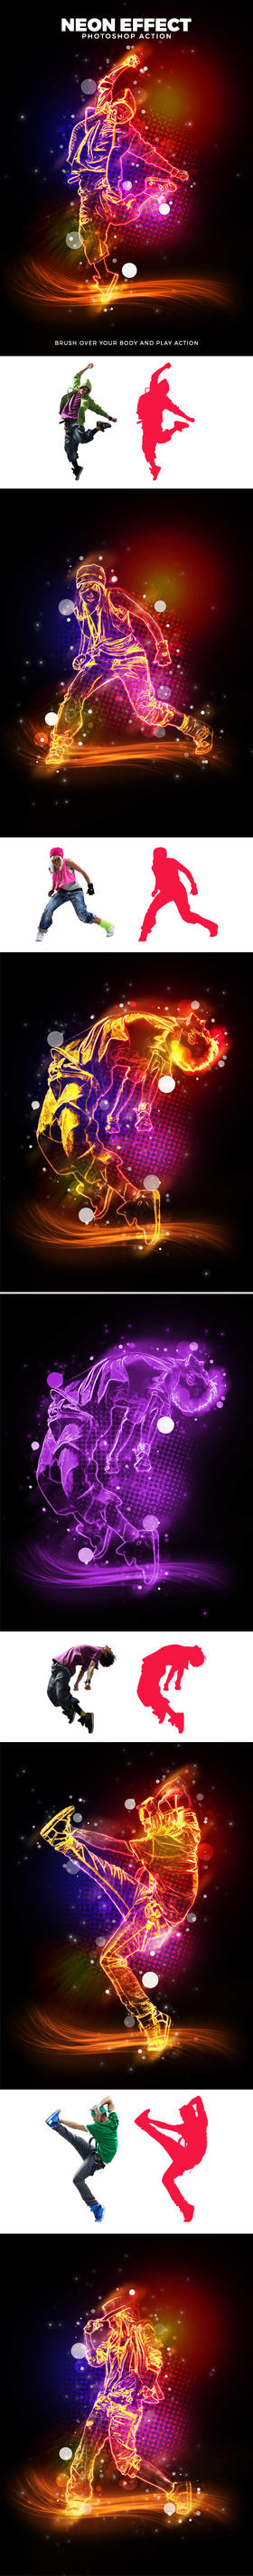 Neon Effect Action by newdesigns